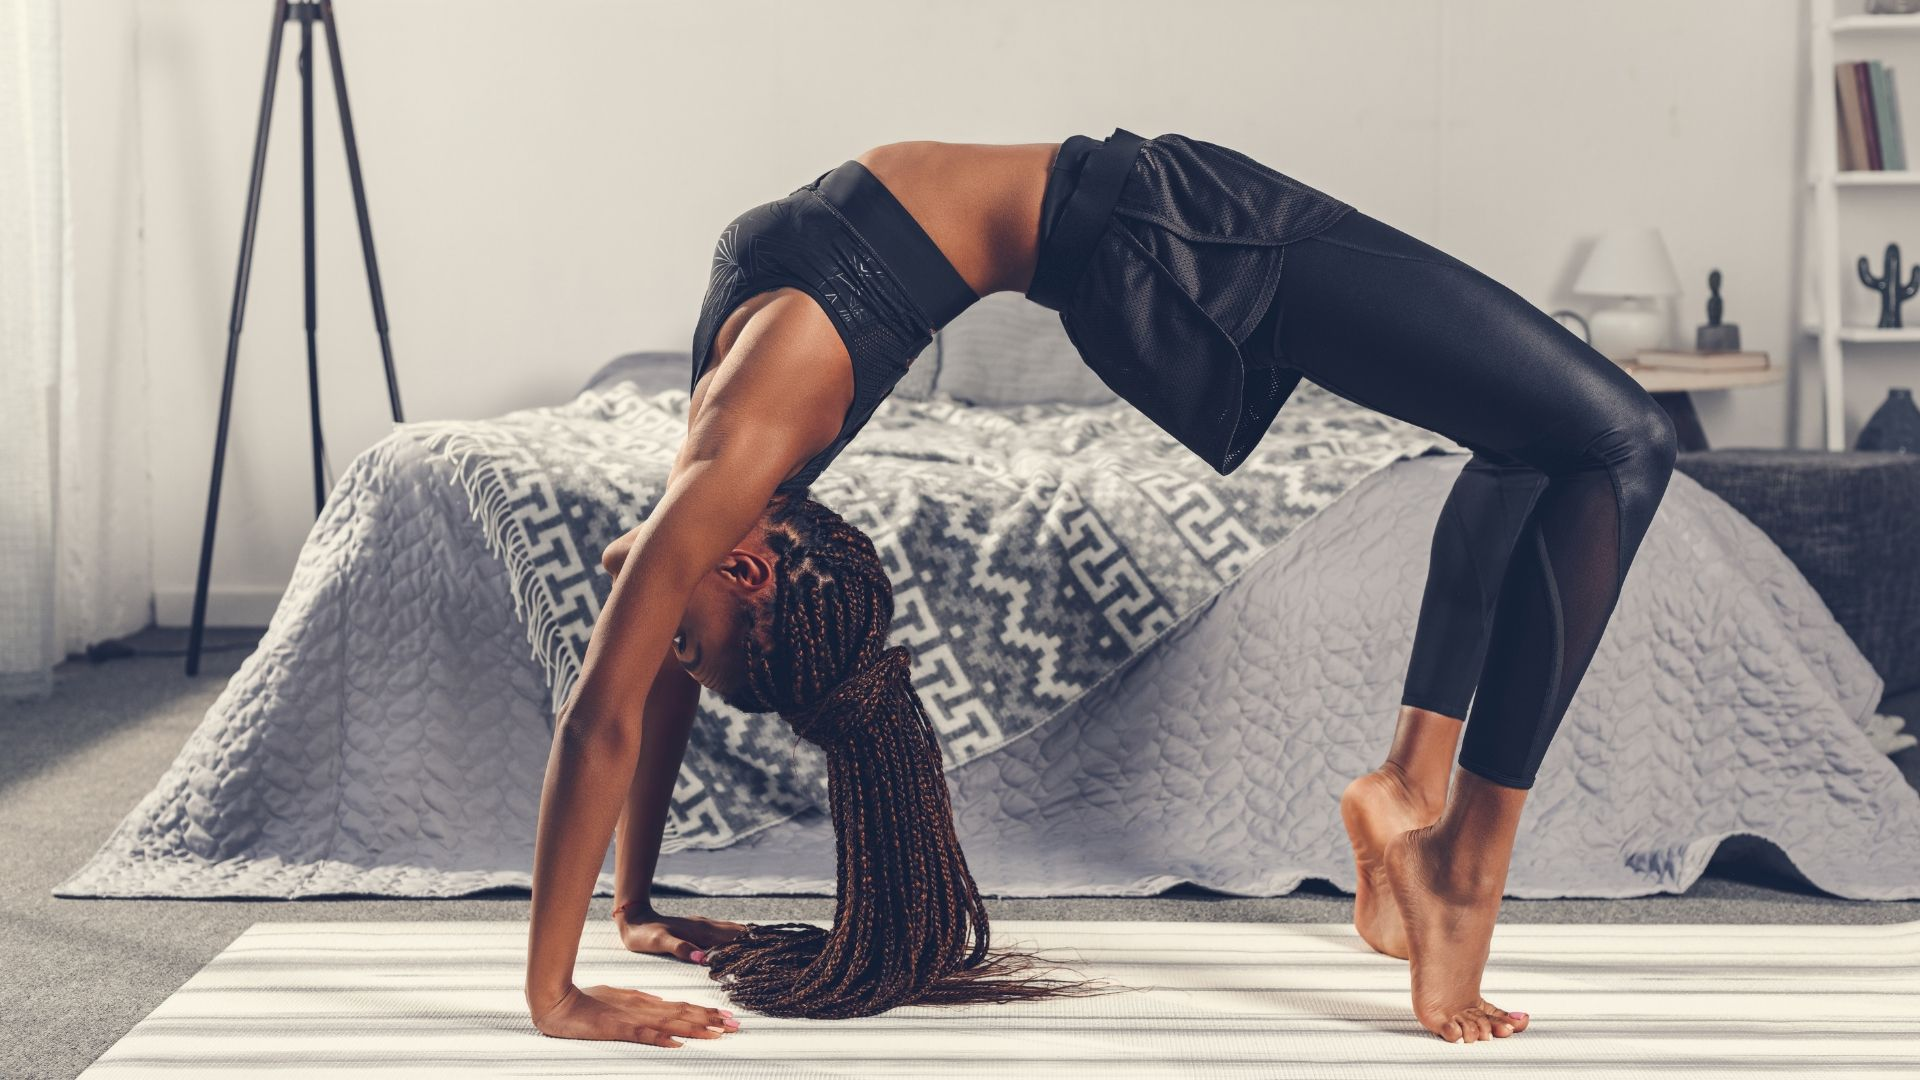 Black woman posing doing yoga